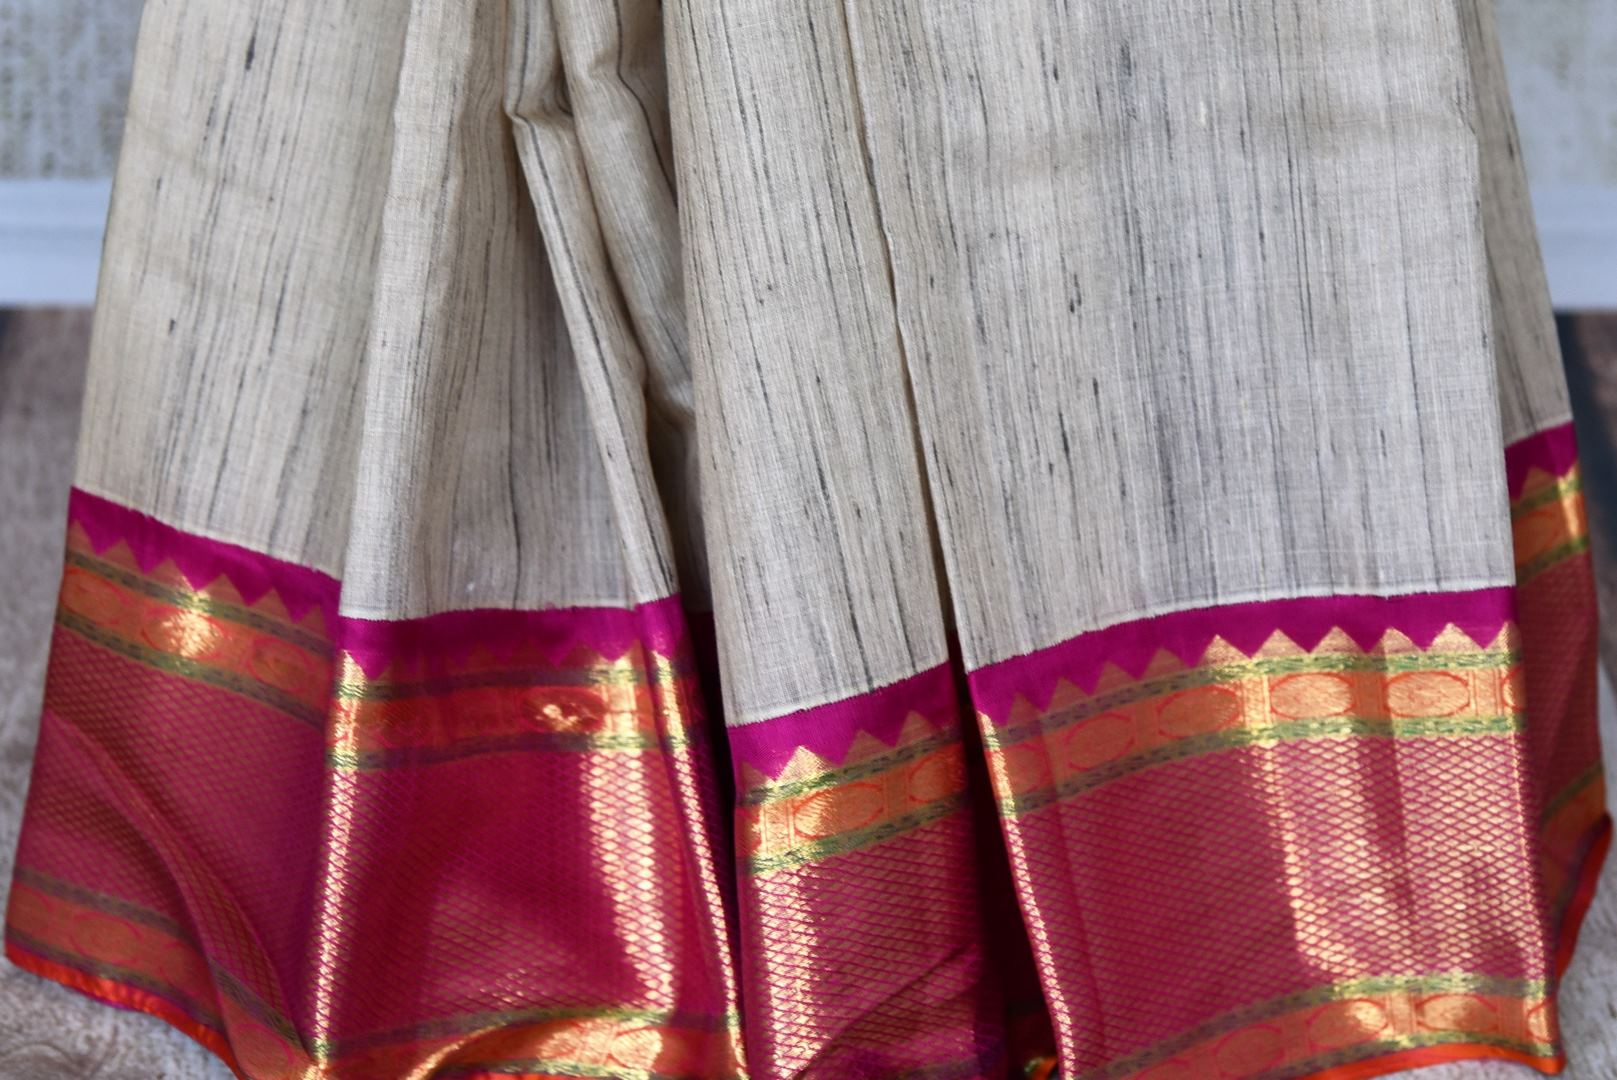 Buy off-white Kanjivaram sari with multicolor zari border online in USA from Pure Elegance. Be an epitome of Indian fashion on special occasions with beautiful designer sarees, Banarasi sarees, Kanchipuram silk sarees available at our Indian fashion store in USA. -pleats